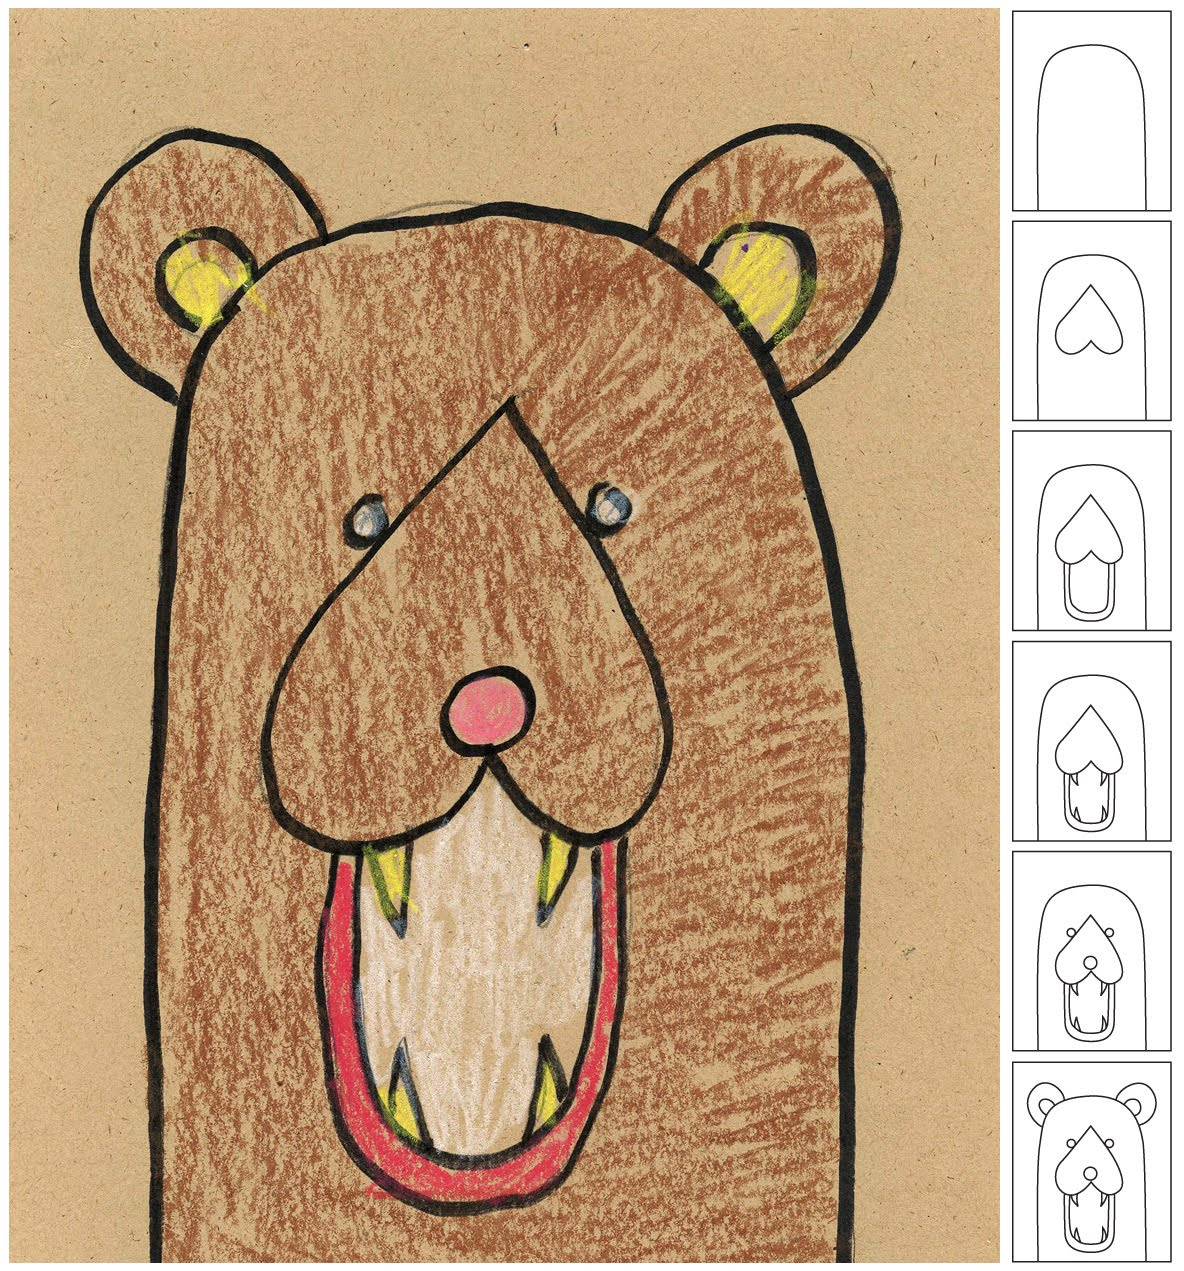 Uncategorized How To Draw A Bear For Kids art instructions for kids how to draw a bear ziggity zoom i used this drawing project few years ago with not only kinders but older students as well they were asked add lots of fur to